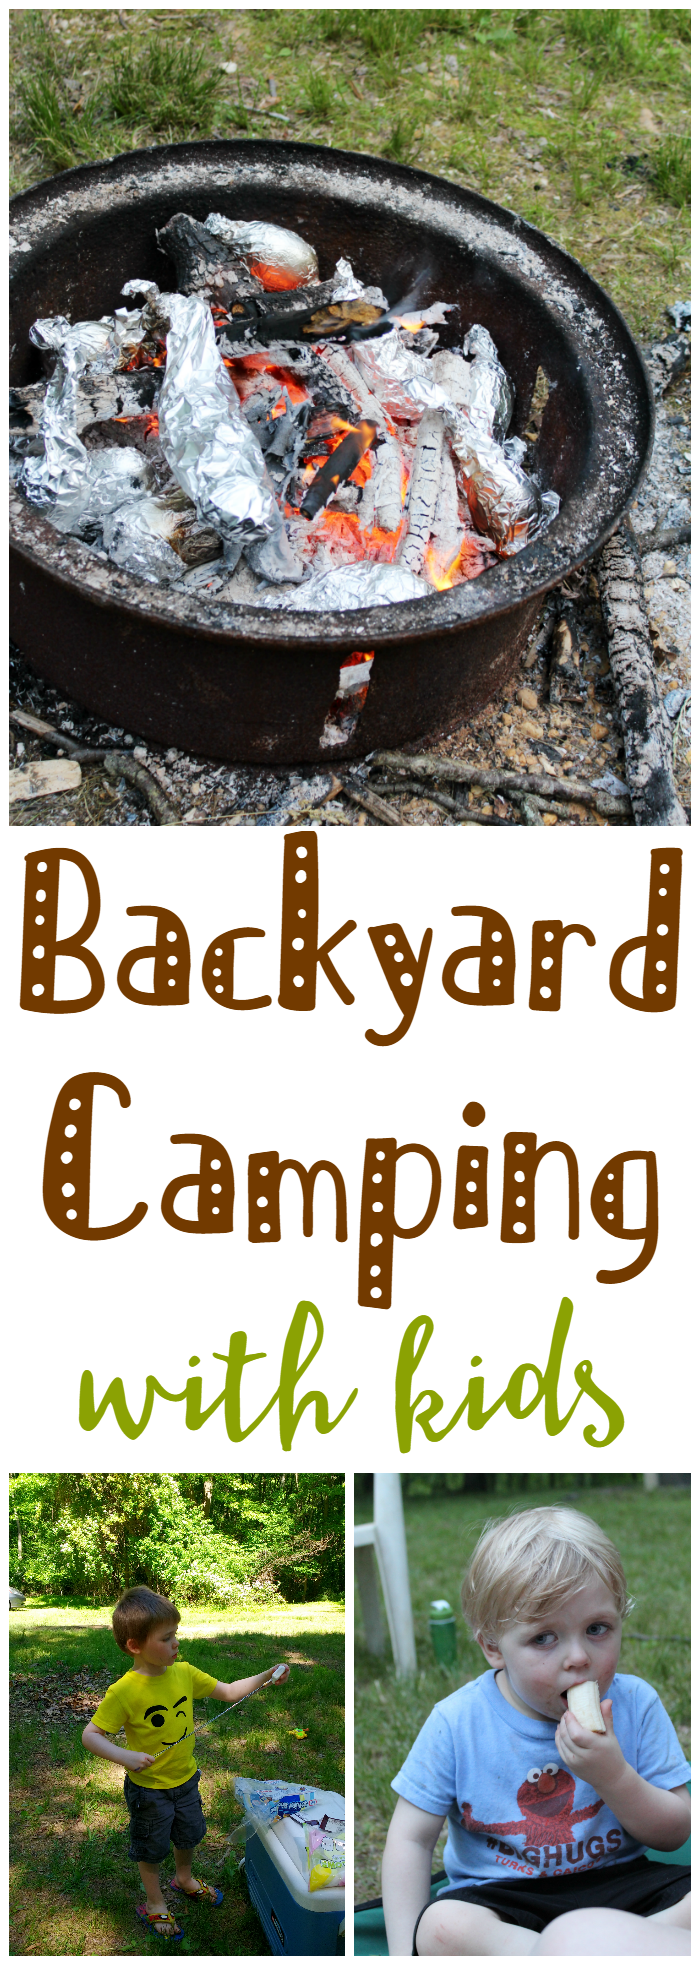 Backyard Camping with Kids - You do not have to travel far or spend a lot of money for a family camping adventure. Check out these tips for backyard camping!